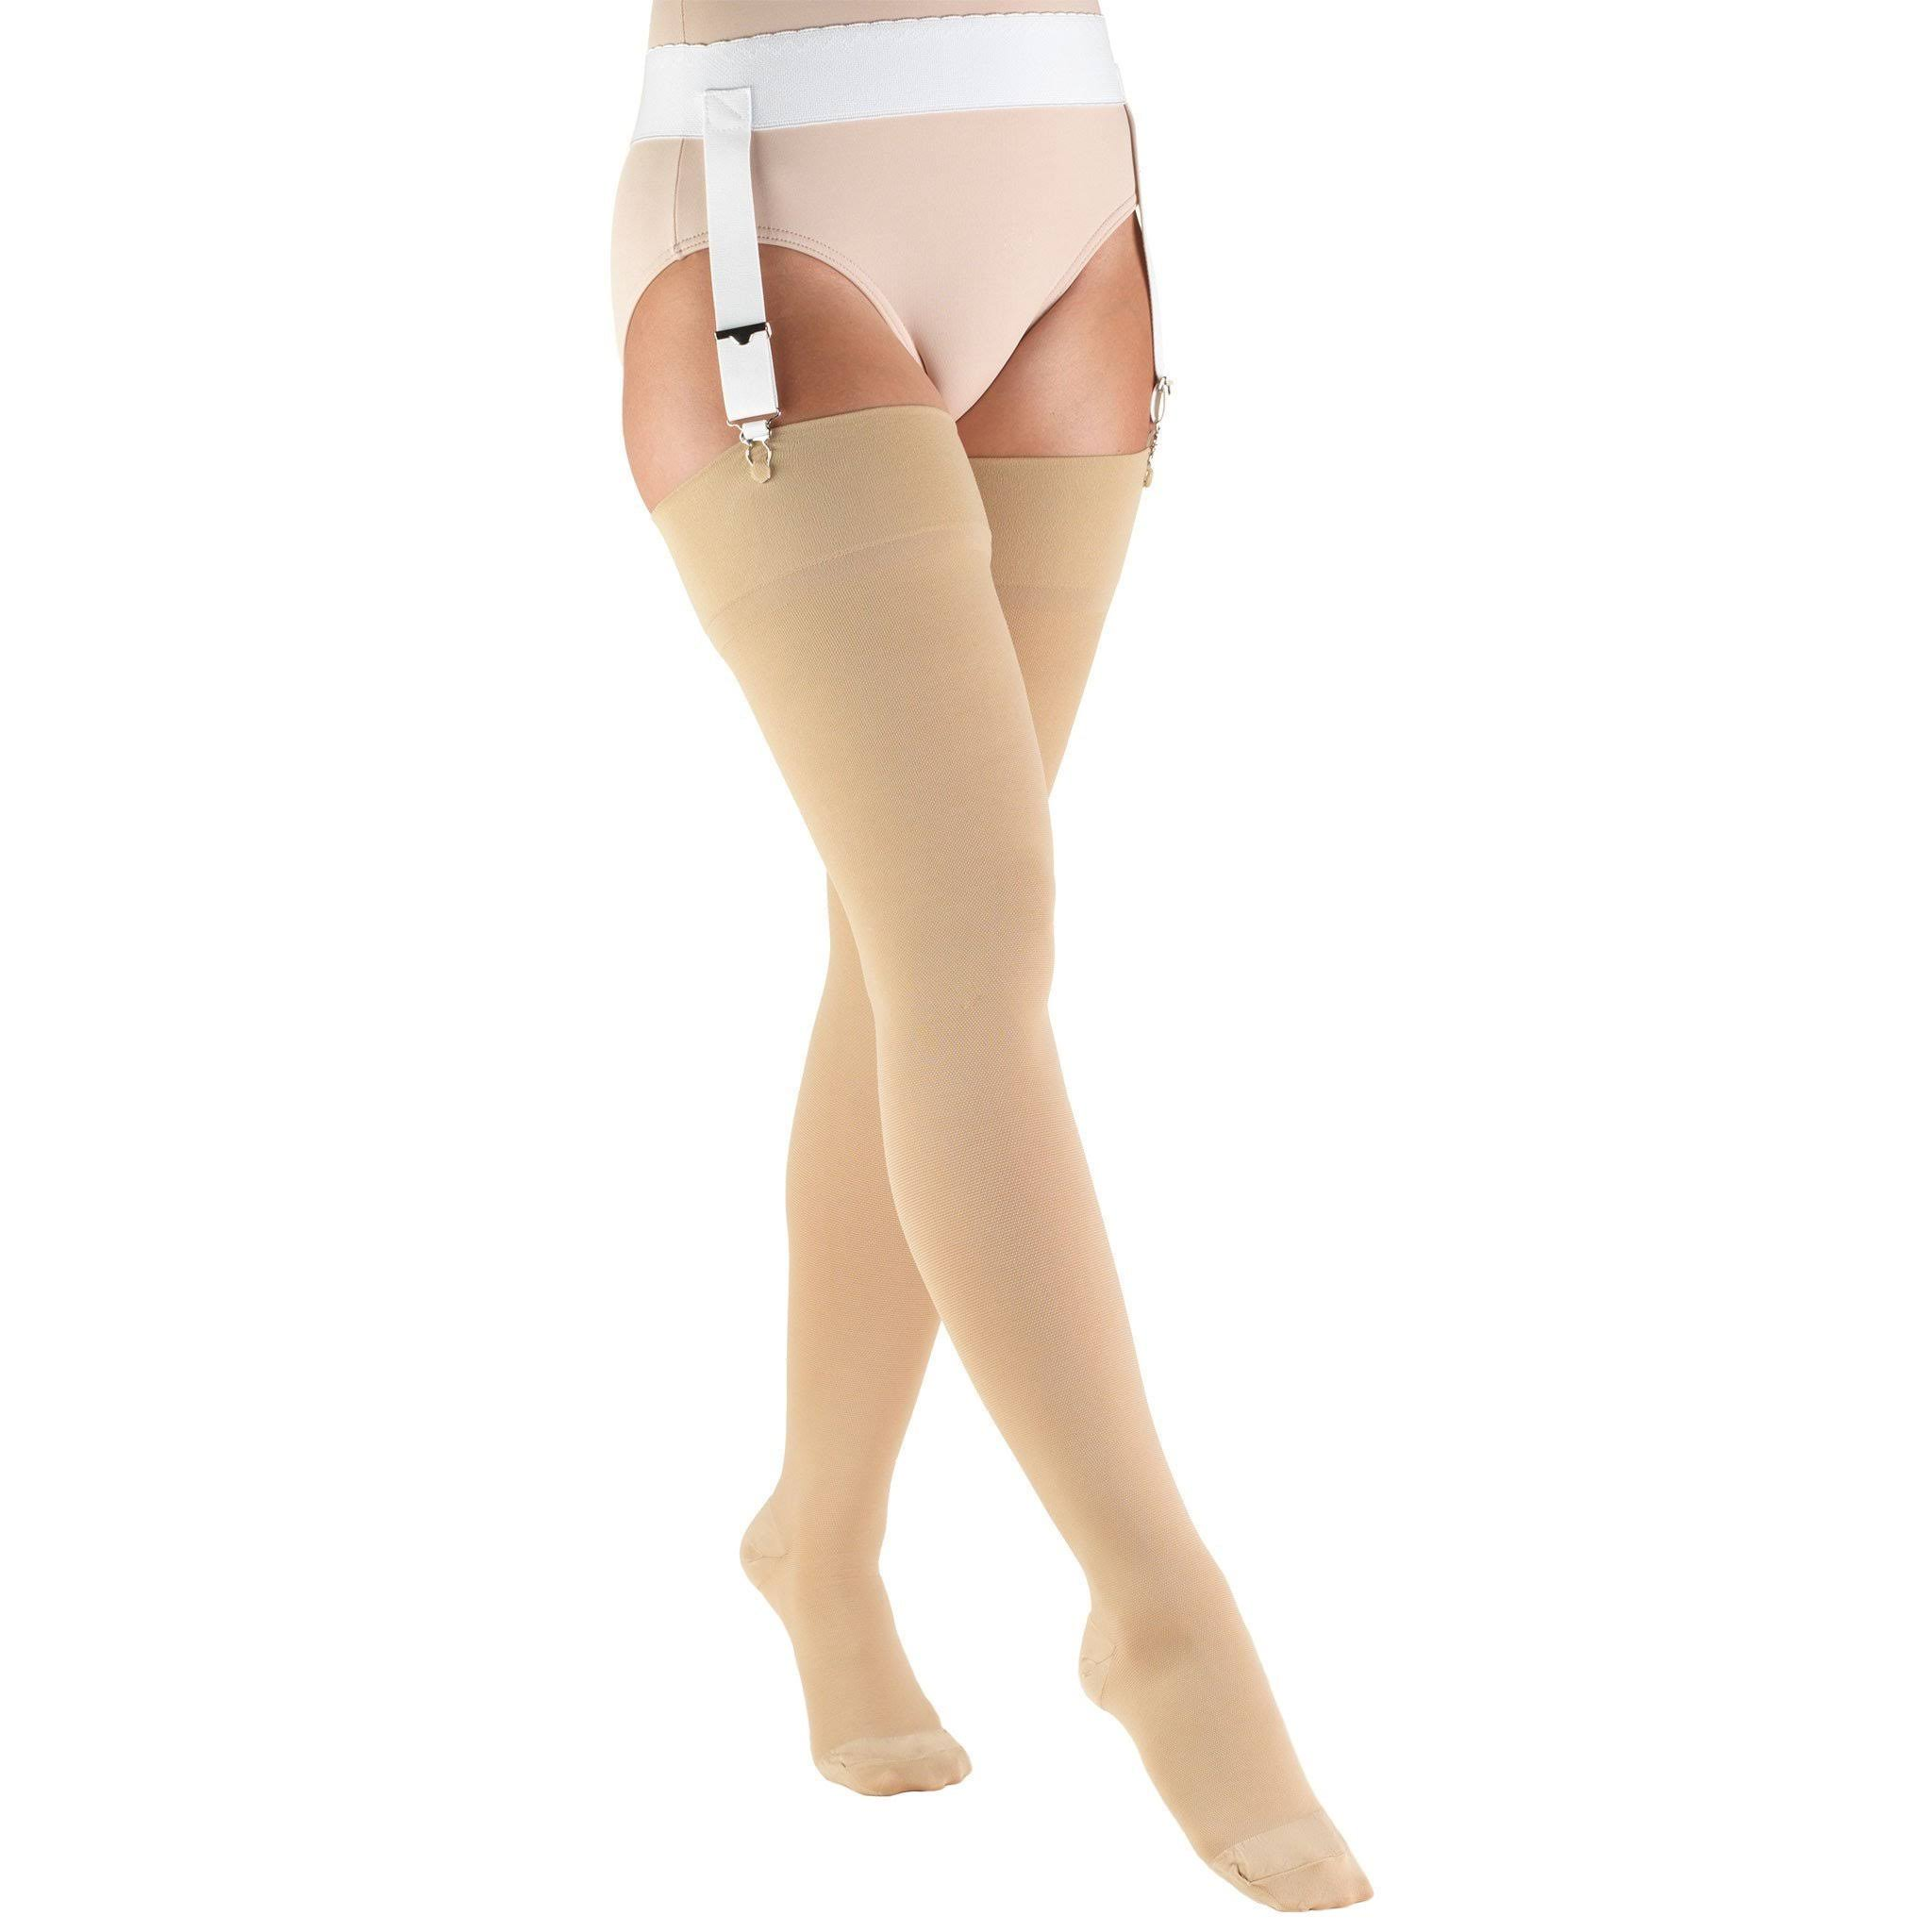 Truform Thigh High Closed Toe Stockings - 20 to 30mmhg, Beige, Large